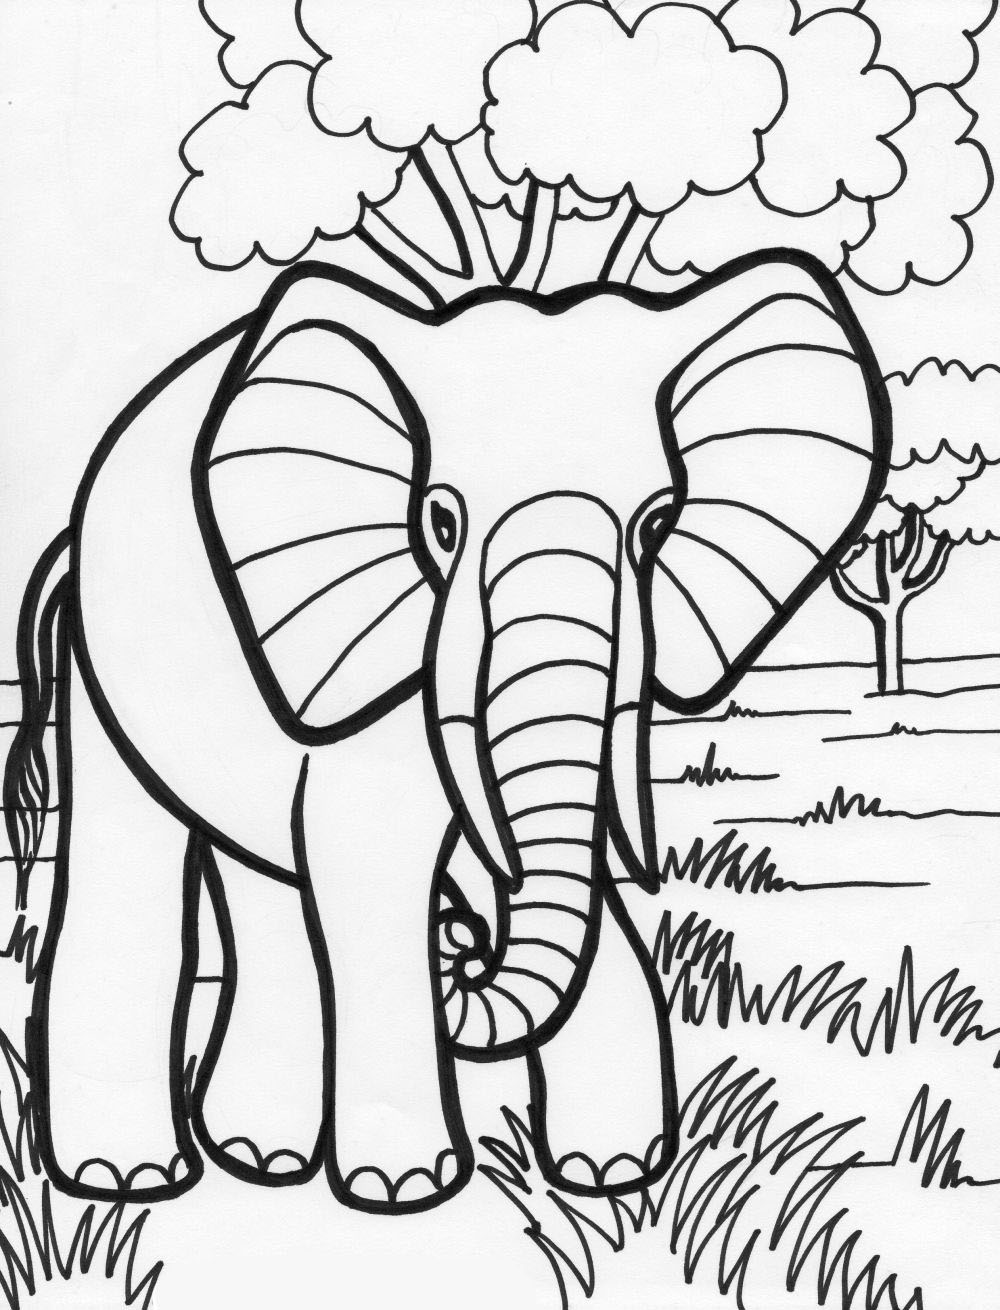 halloween elephant coloring pages - photo#29